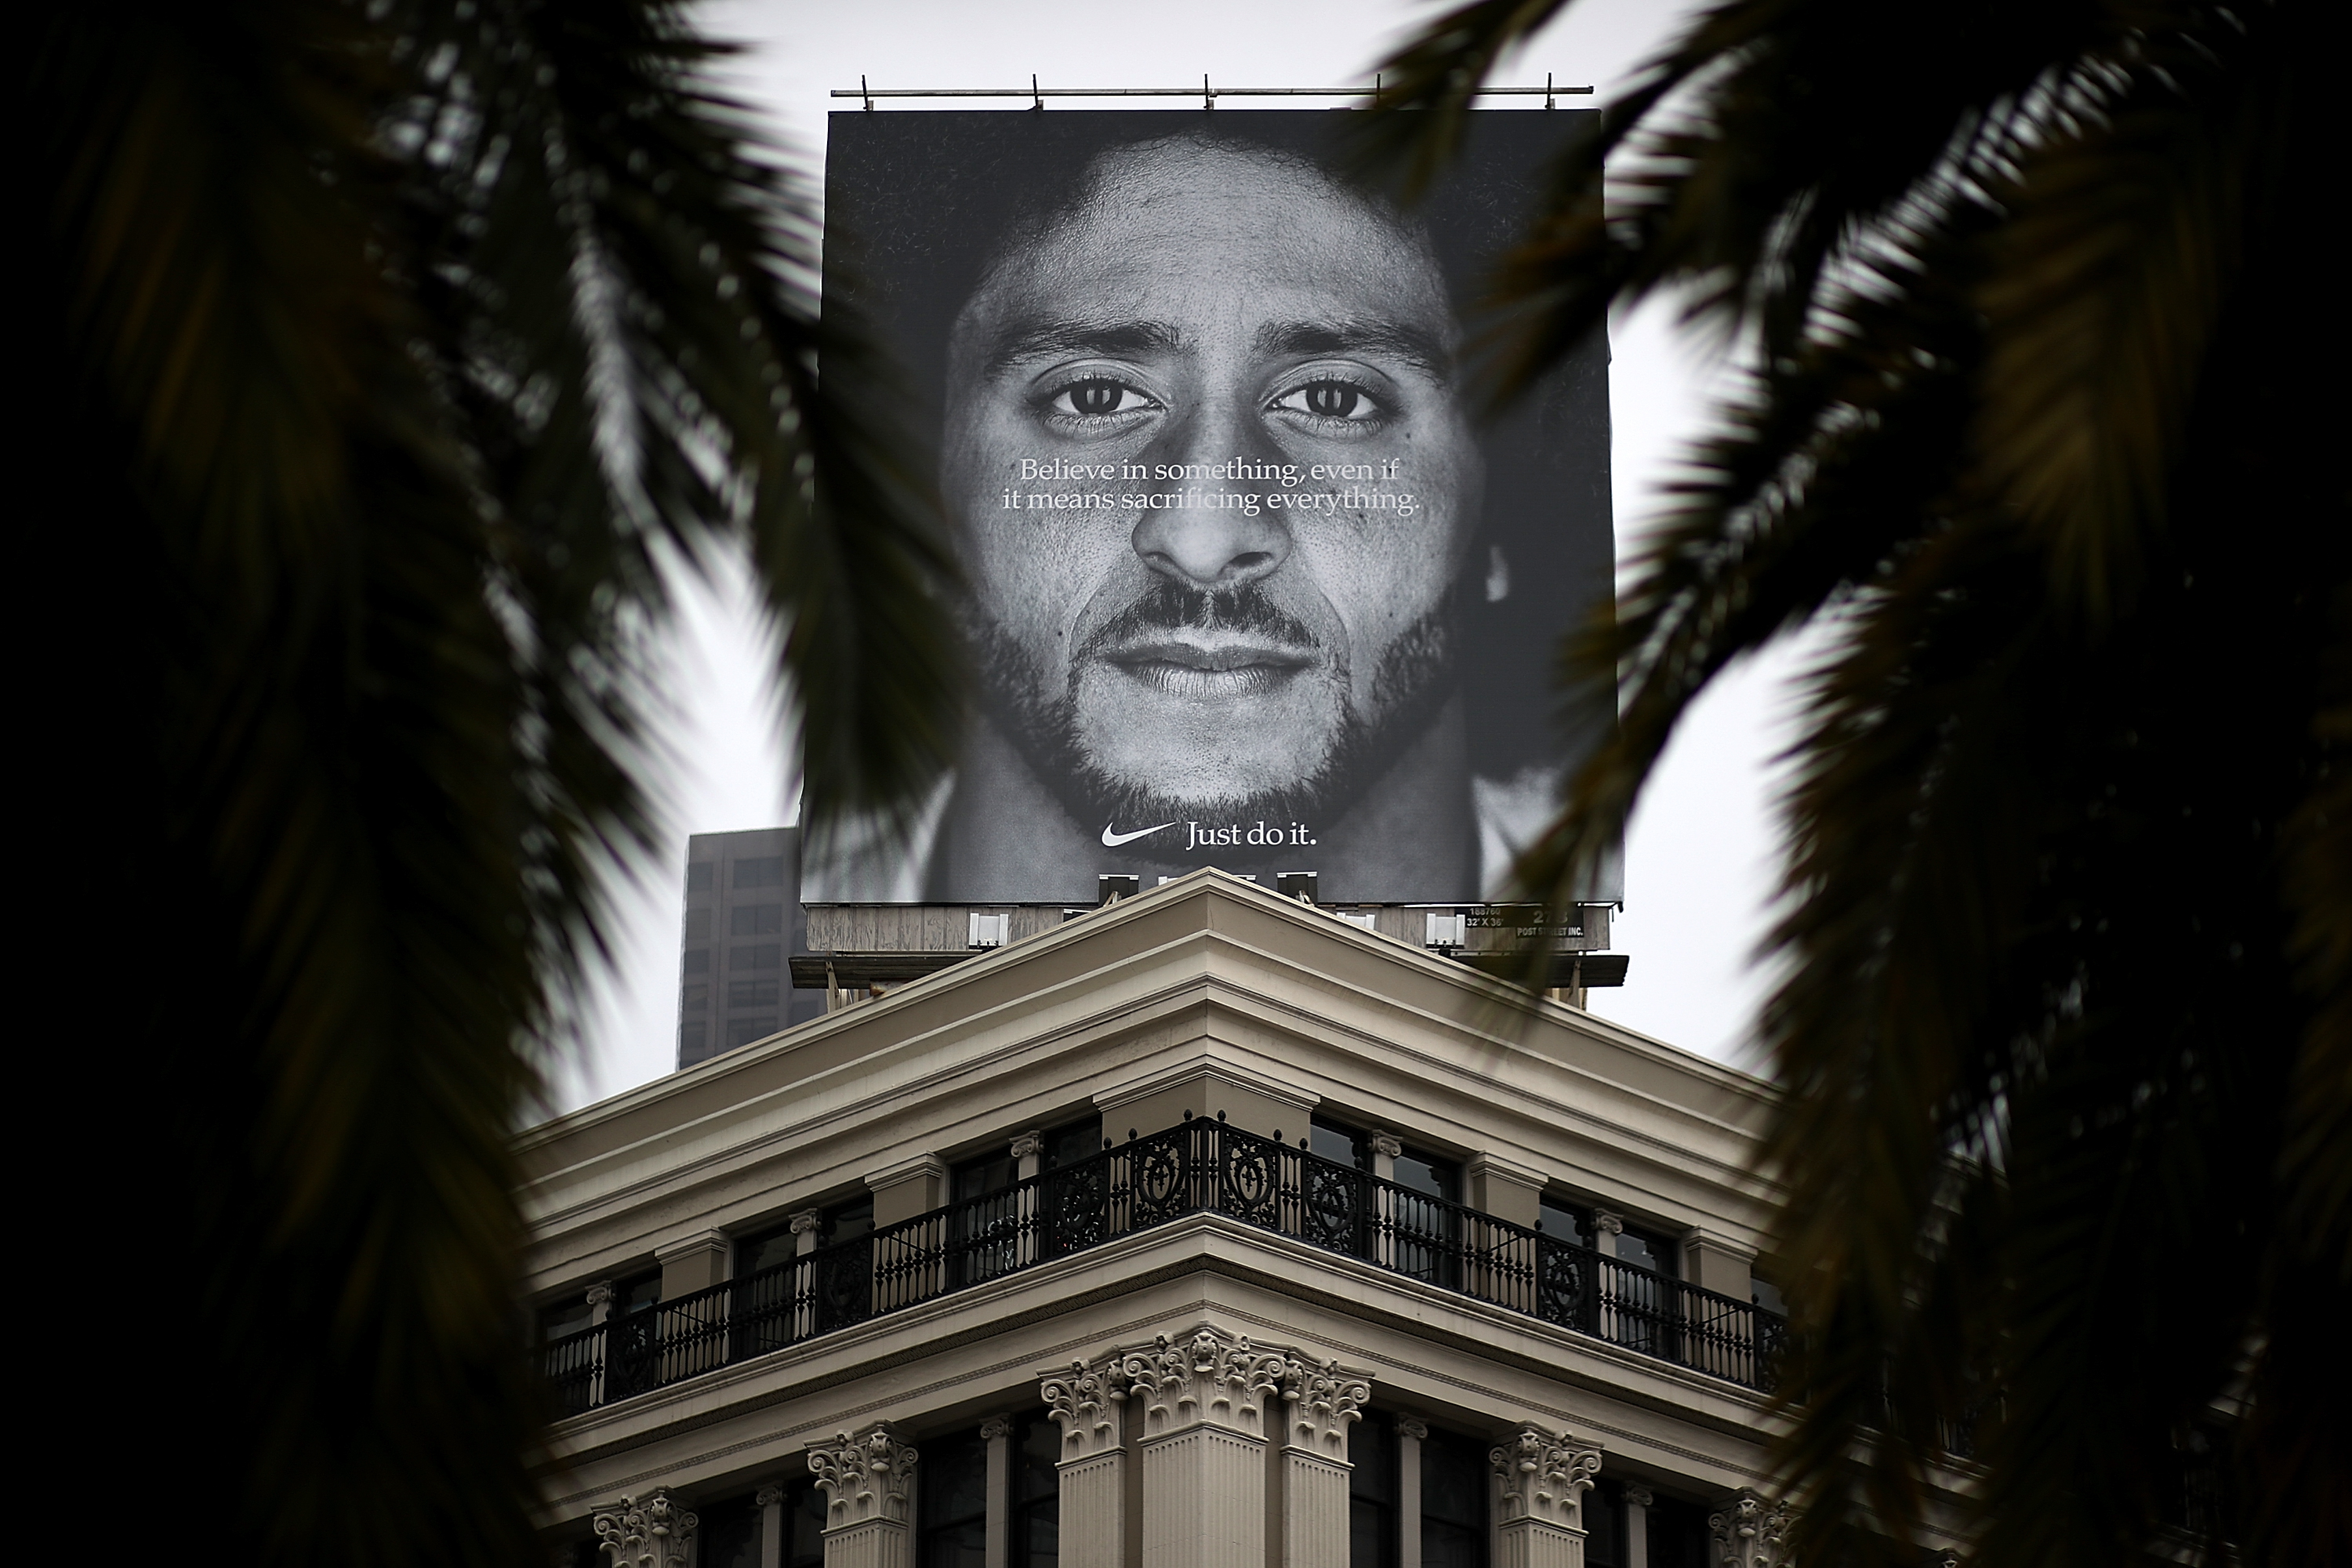 A billboard featuring former San Francisco 49ers quarterback Colin Kaepernick is displayed on the roof of the Nike Store on September 5, 2018, in San Francisco, California. Nike launched an ad campaign to commemorate the 30th anniversary of its iconic 'Just Do It' motto that features controversial former NFL quarterback Colin Kaepernick and a message that says 'Believe in something. Even if it means sacrificing everything.' (Getty Images)